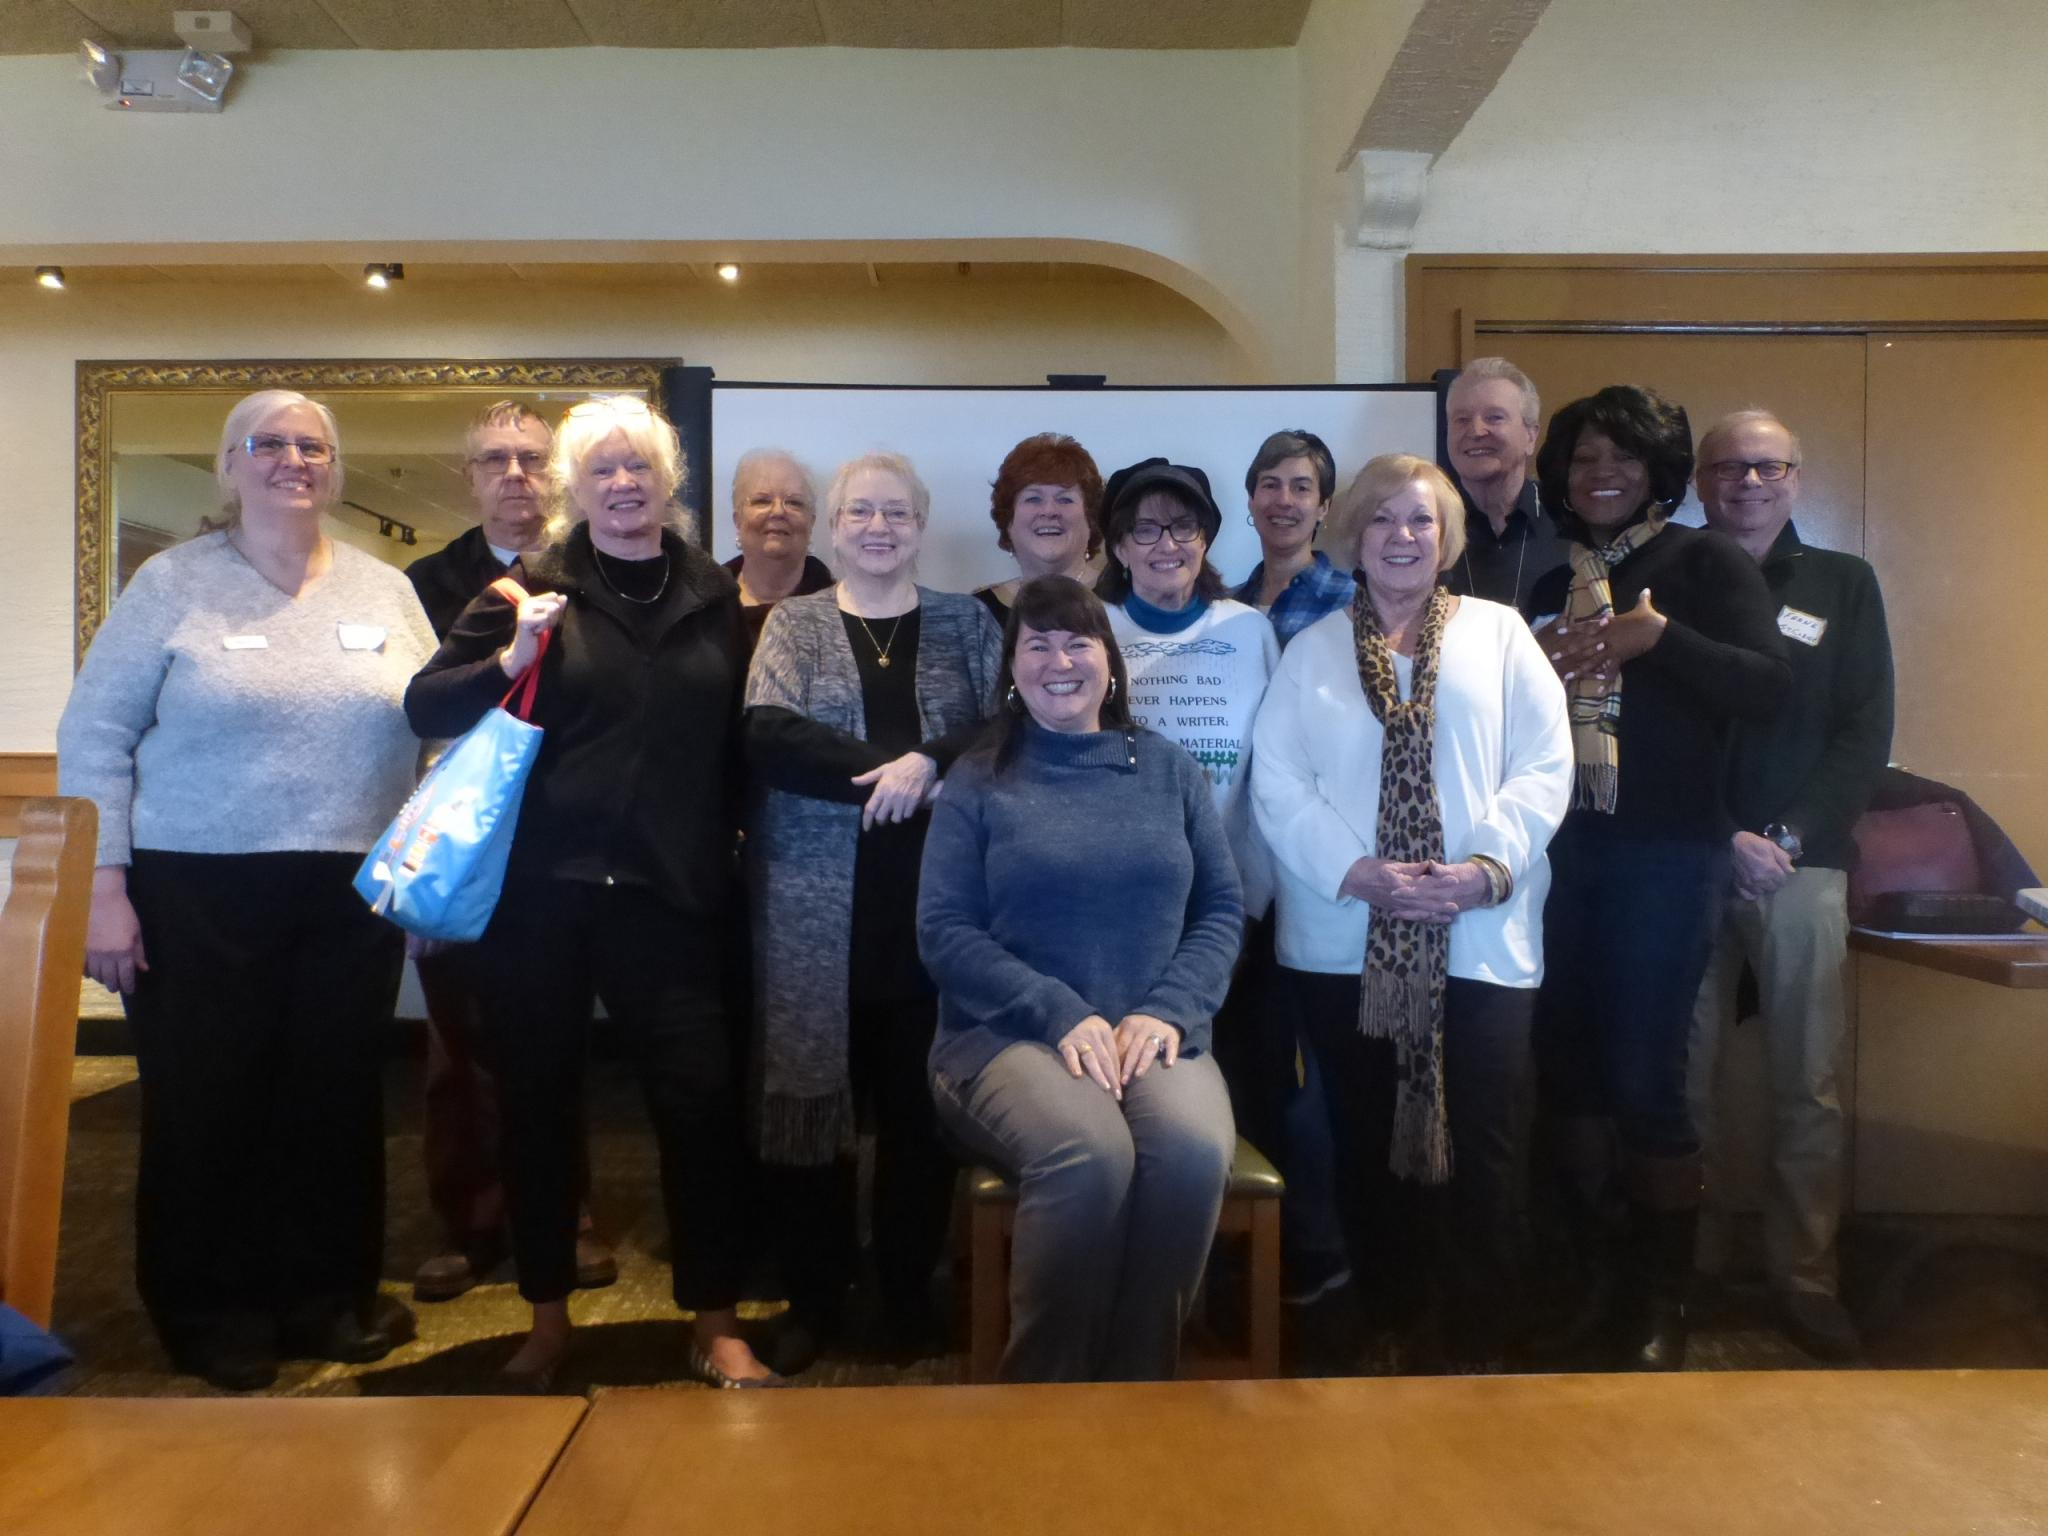 Kristine Hall, seated, was the guest speaker for the Dallas Mystery Writers group.